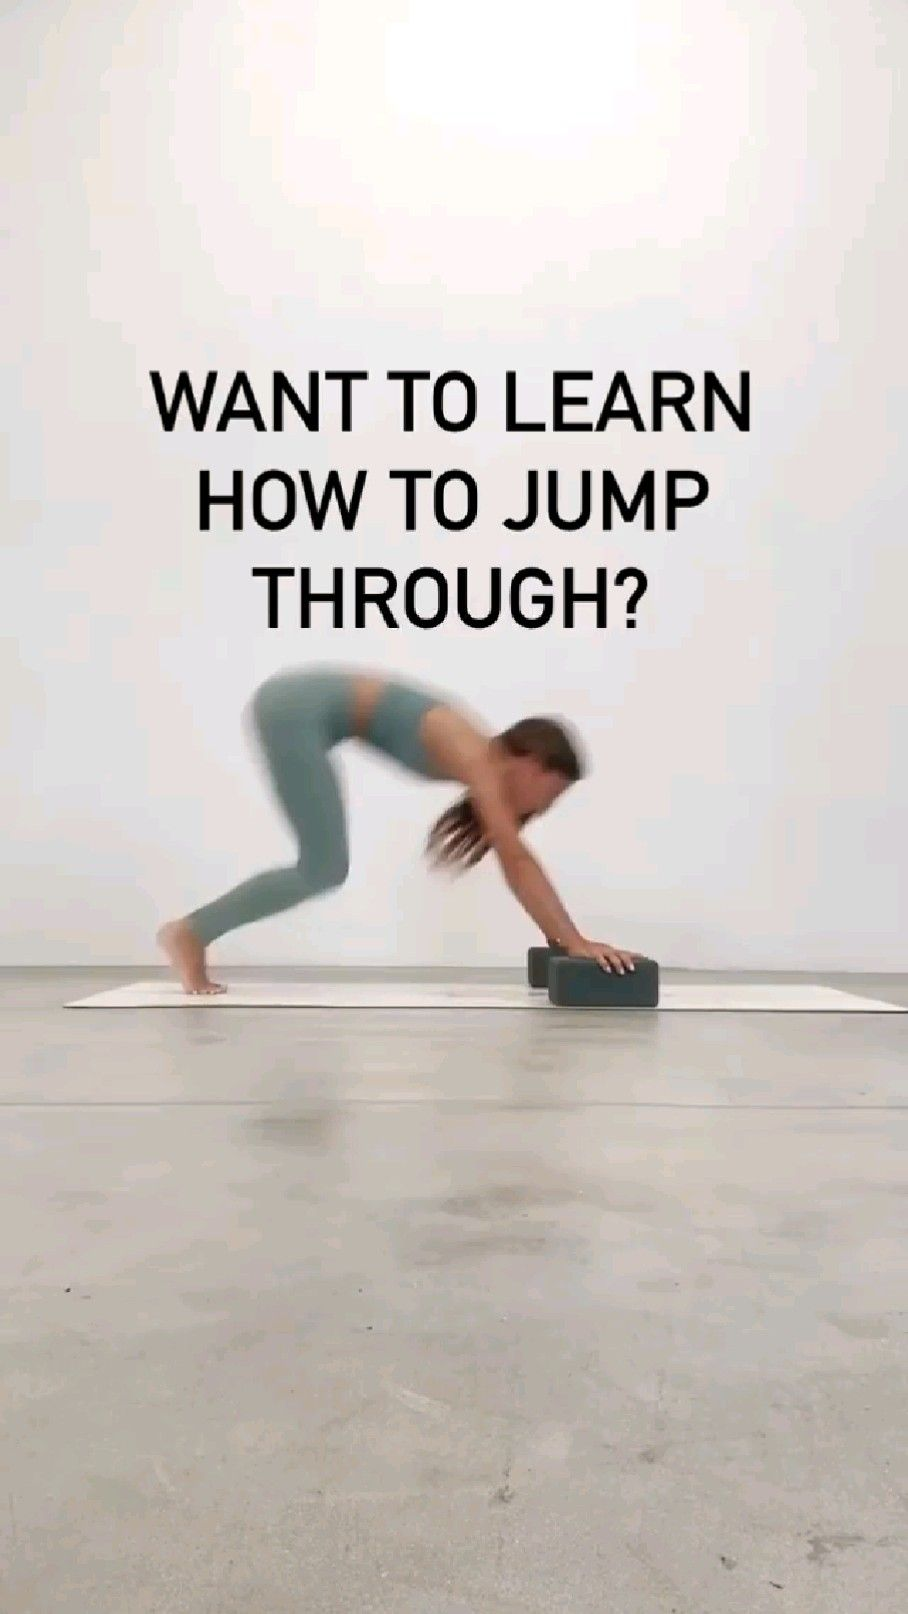 want to learn how to jump through?